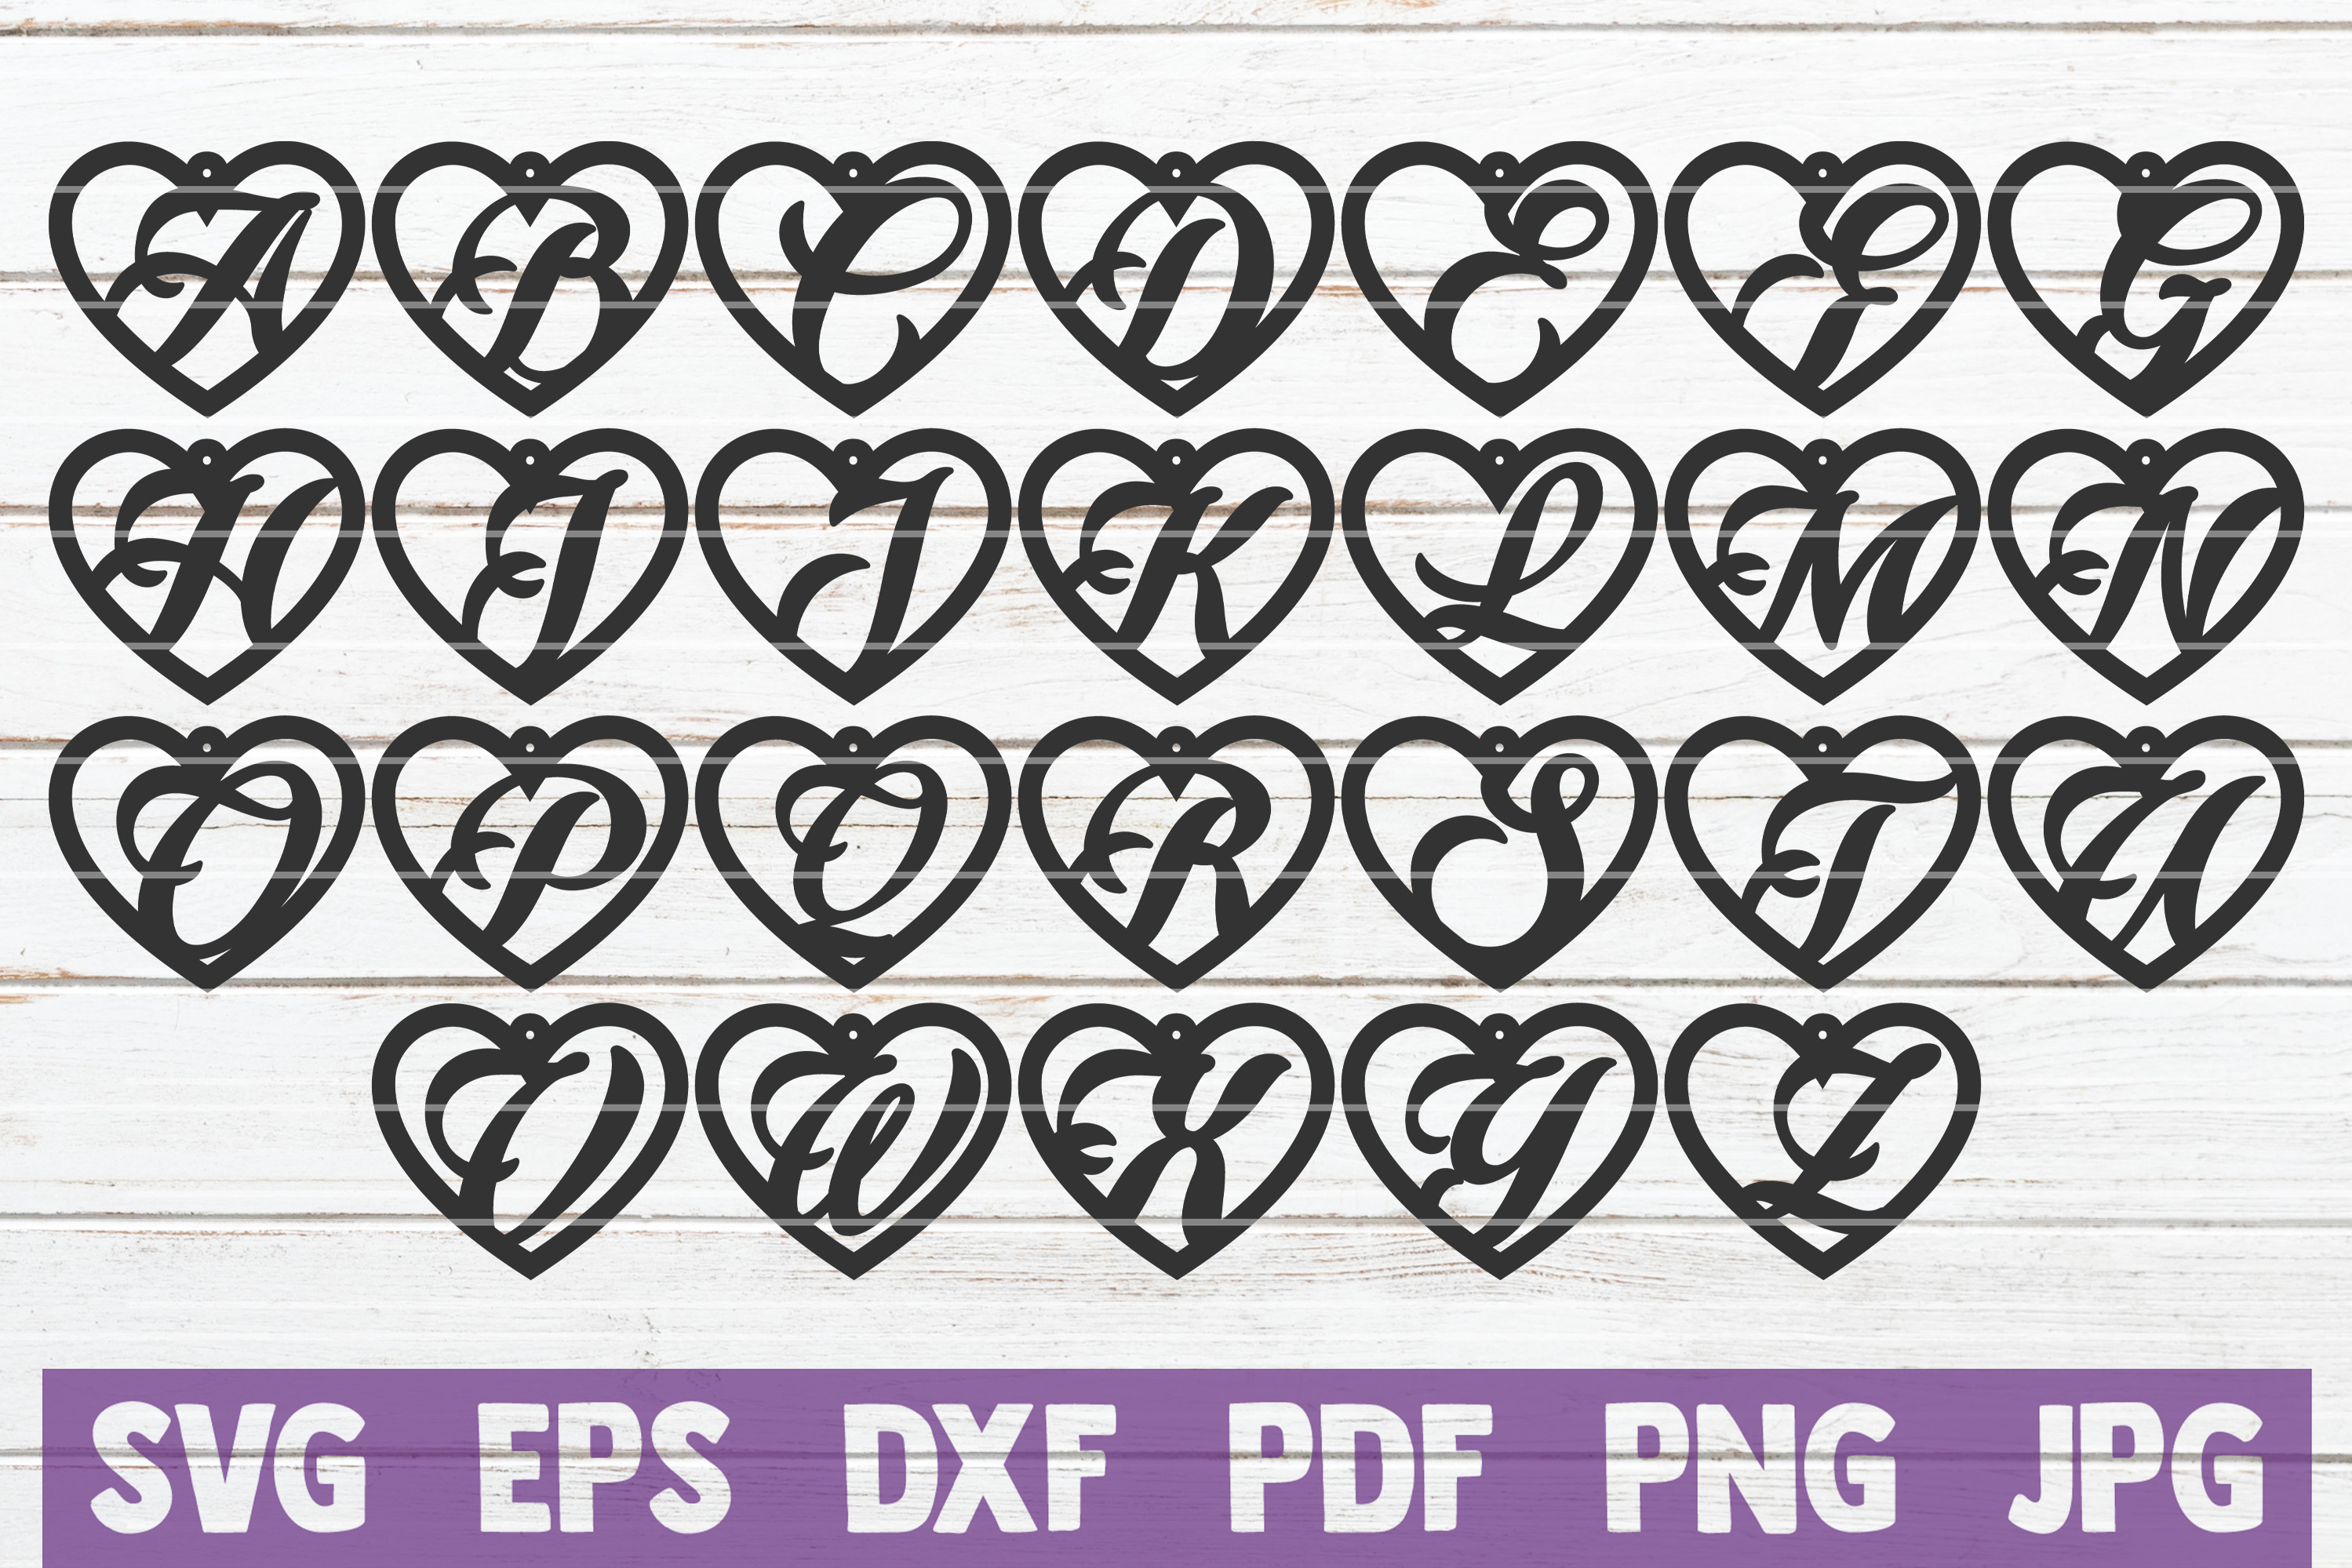 Download Free Heart Alphabet Earrings Svg Bundle Graphic By Mintymarshmallows for Cricut Explore, Silhouette and other cutting machines.